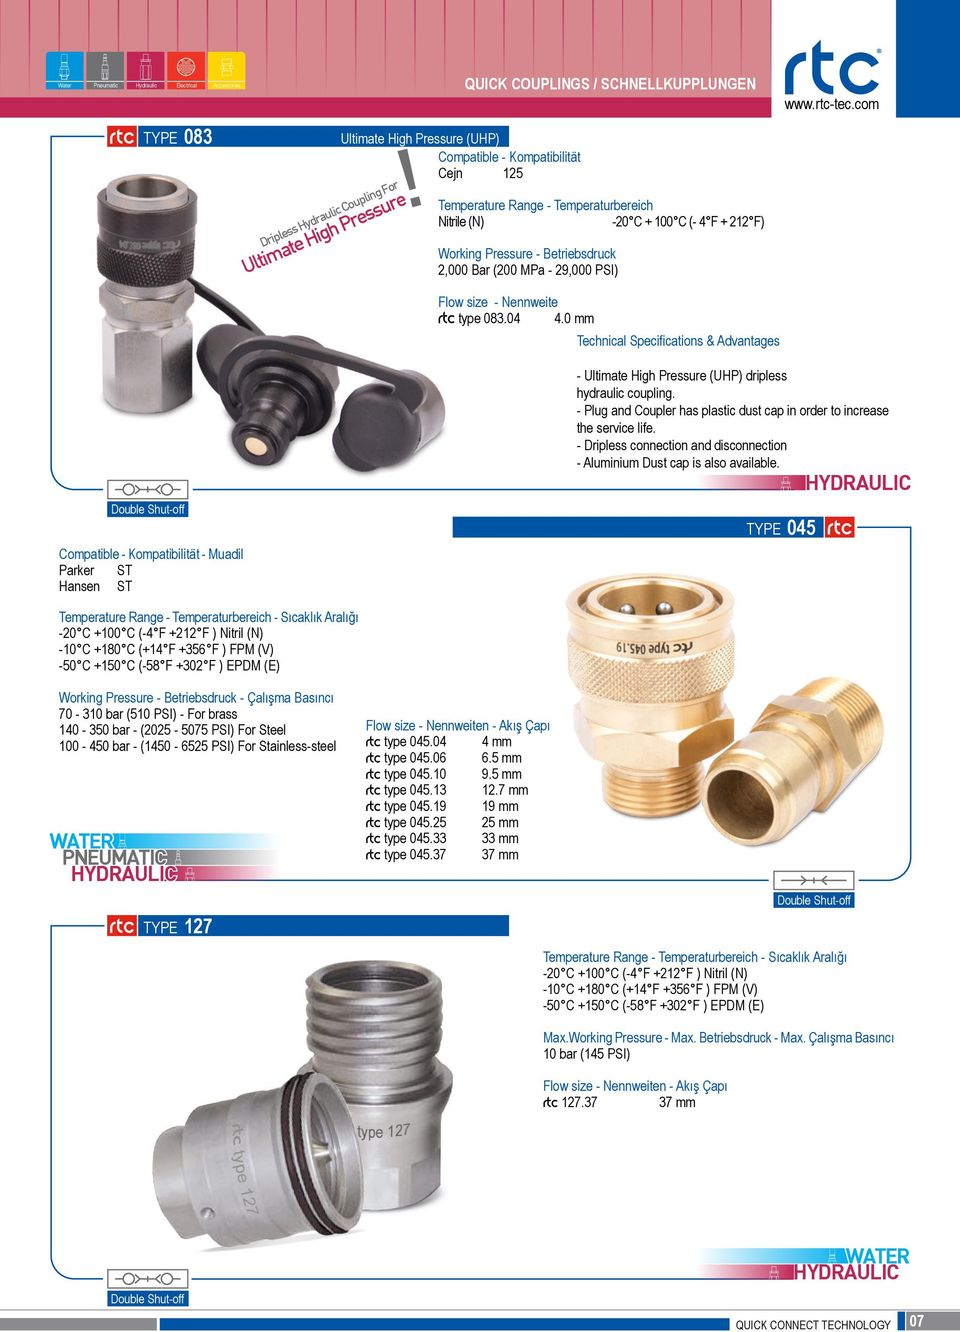 Nennweite rtc type 083.04 4.0 mm Technical Specifications & Advantages Parker ST Hansen ST - Ultimate High Pressure (UHP) dripless hydraulic coupling.